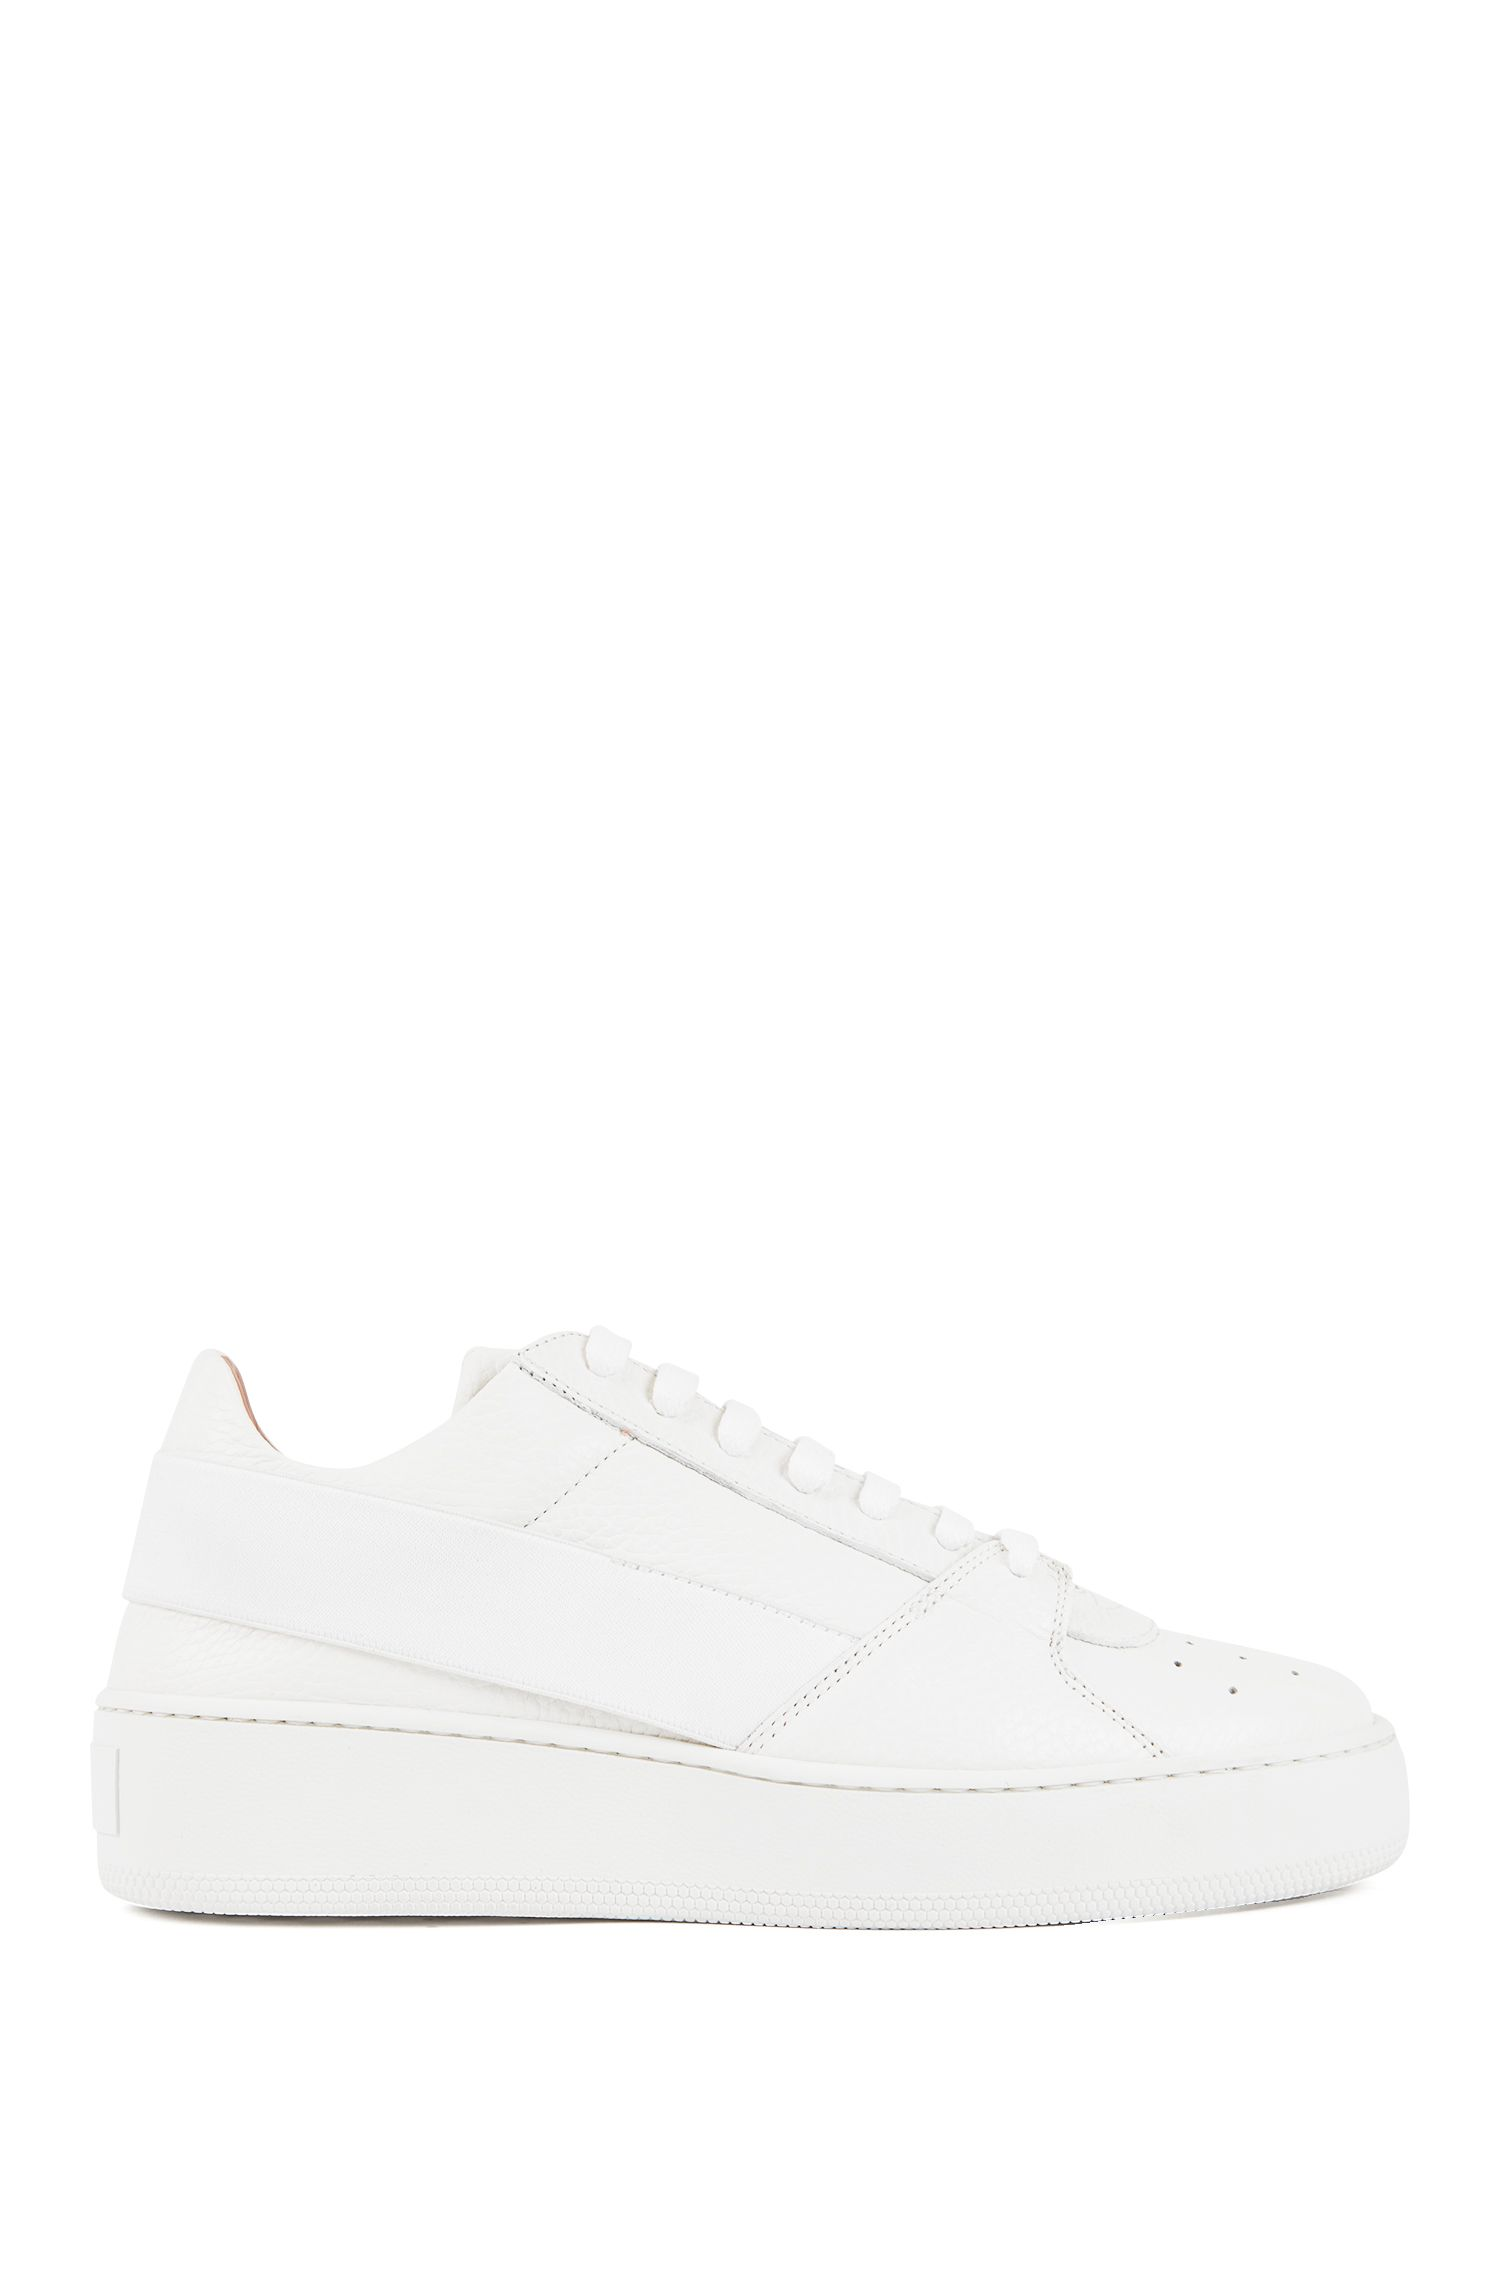 Low-top leather trainers with elastic strap and platform sole, White